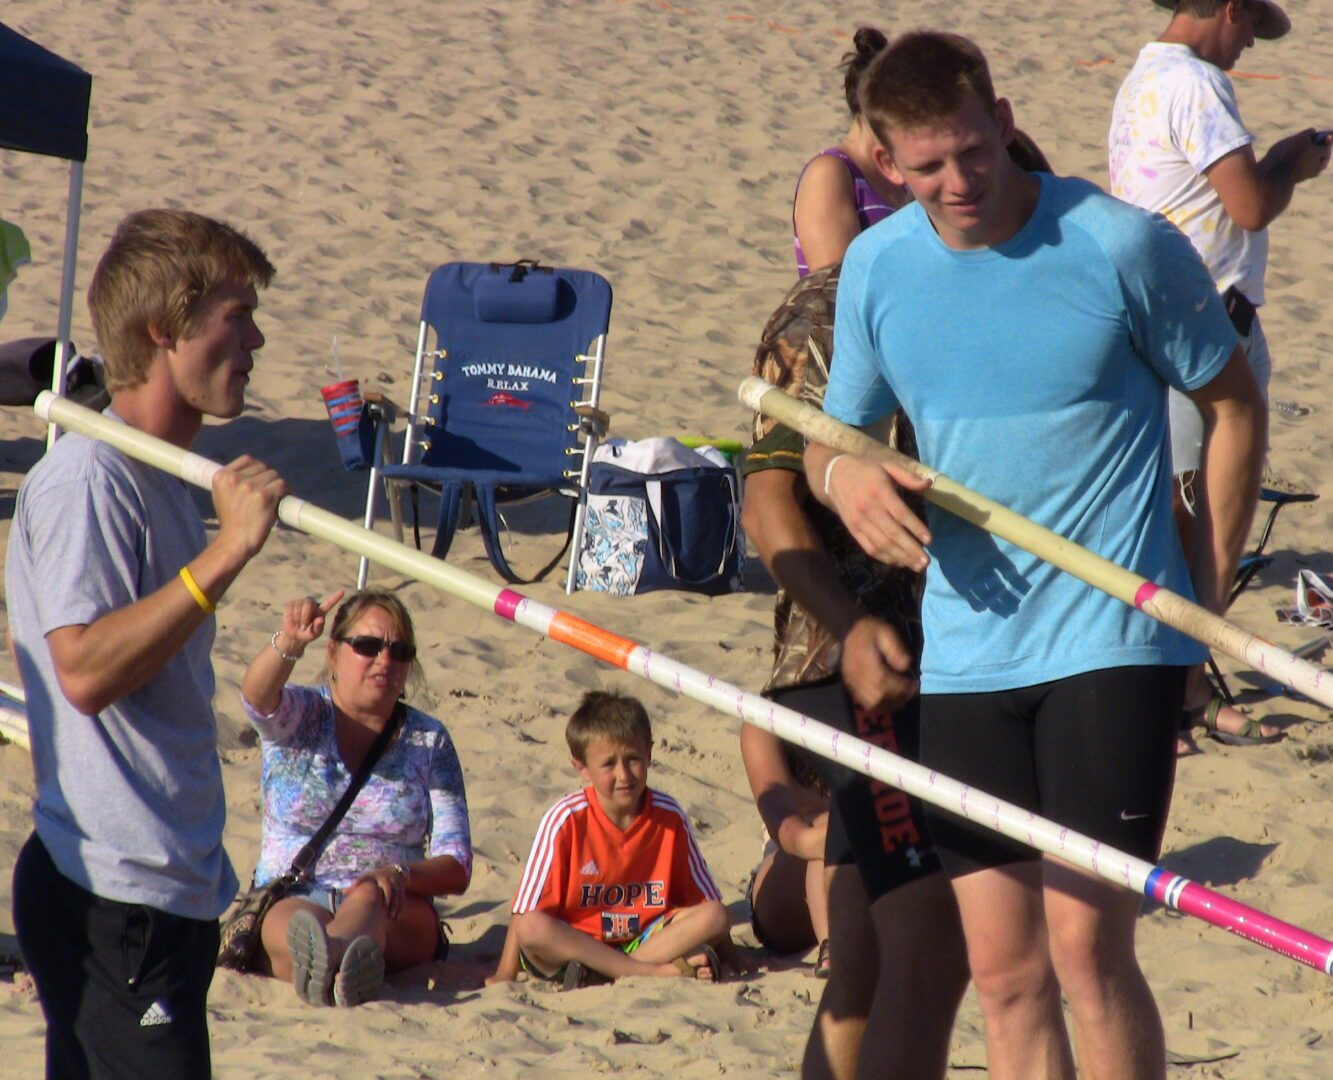 Grand Haven Beach Vault Day 1: A few highlights from the action [VIDEO]